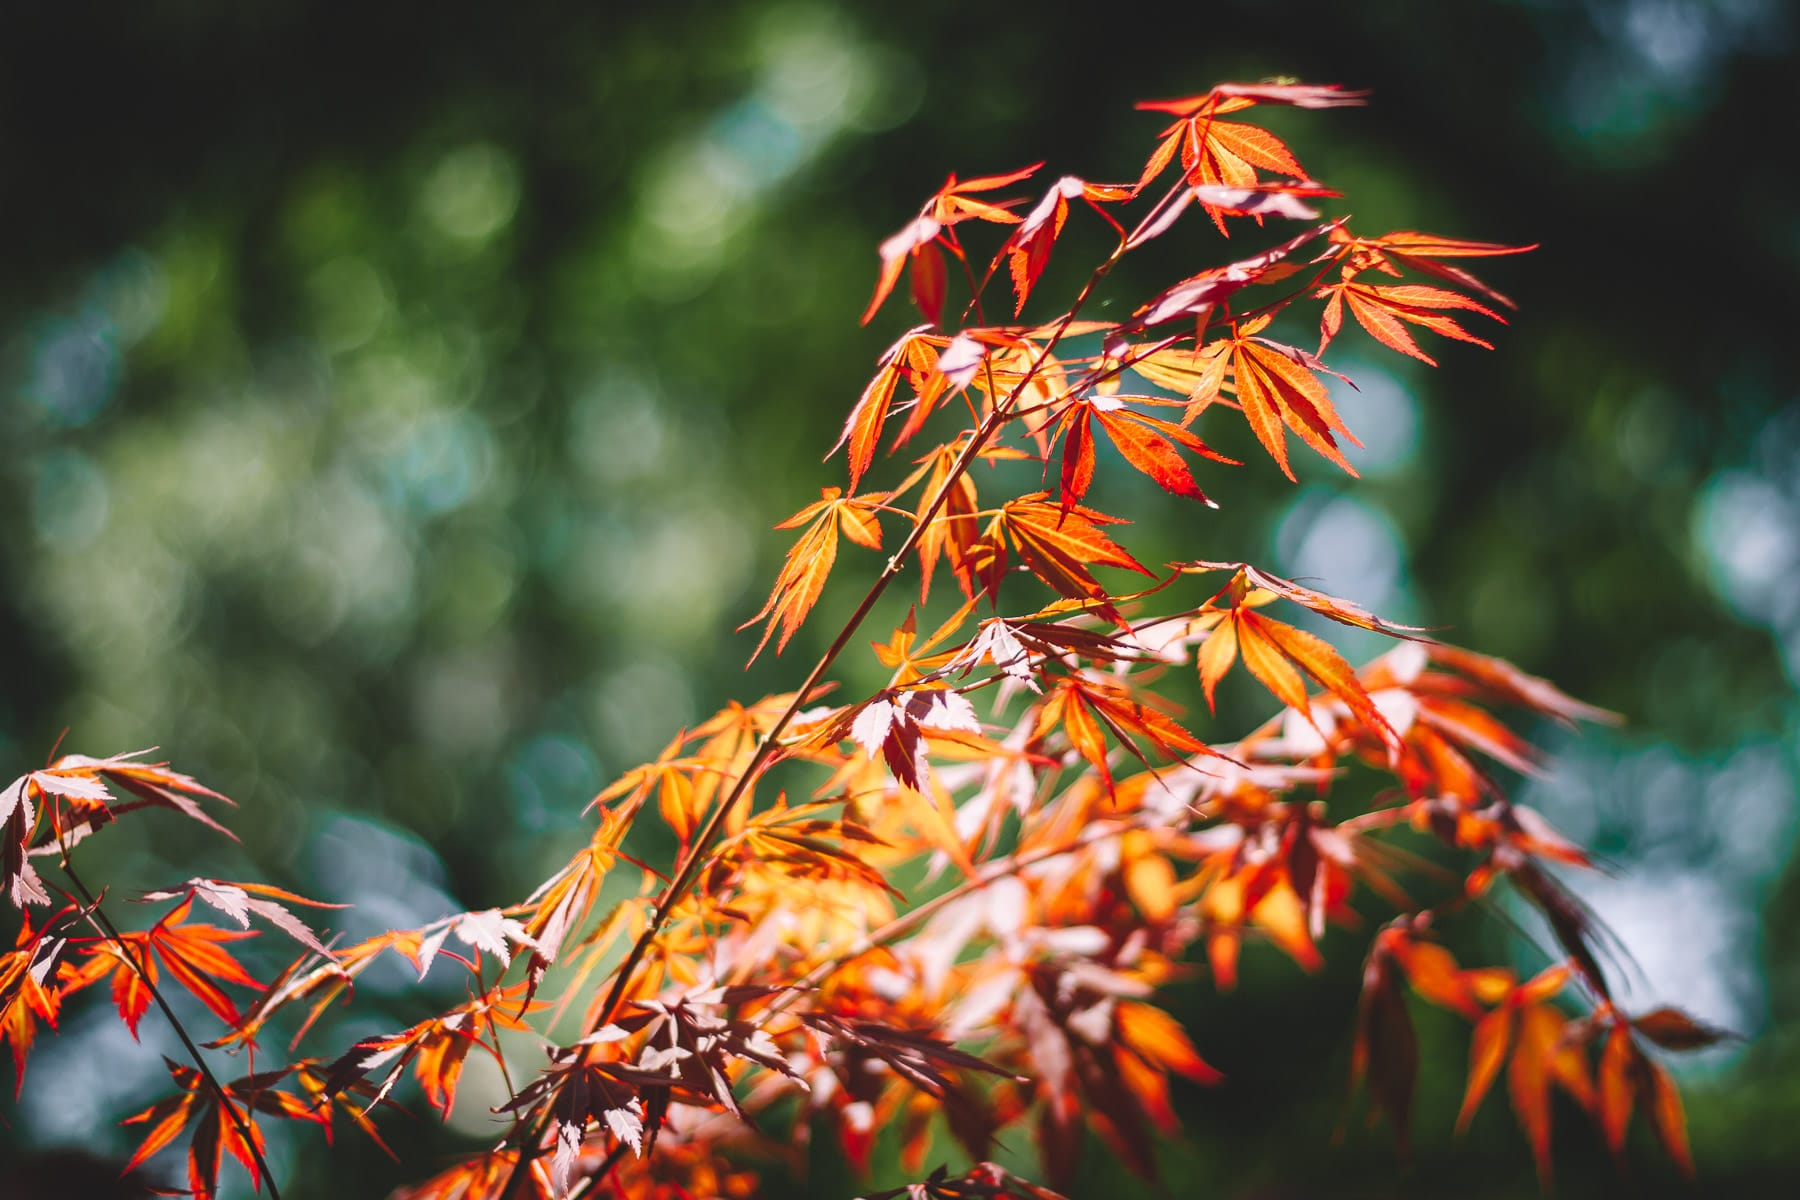 Detail of a Japanese Maple tree spotted in a Tyler, Texas, garden.